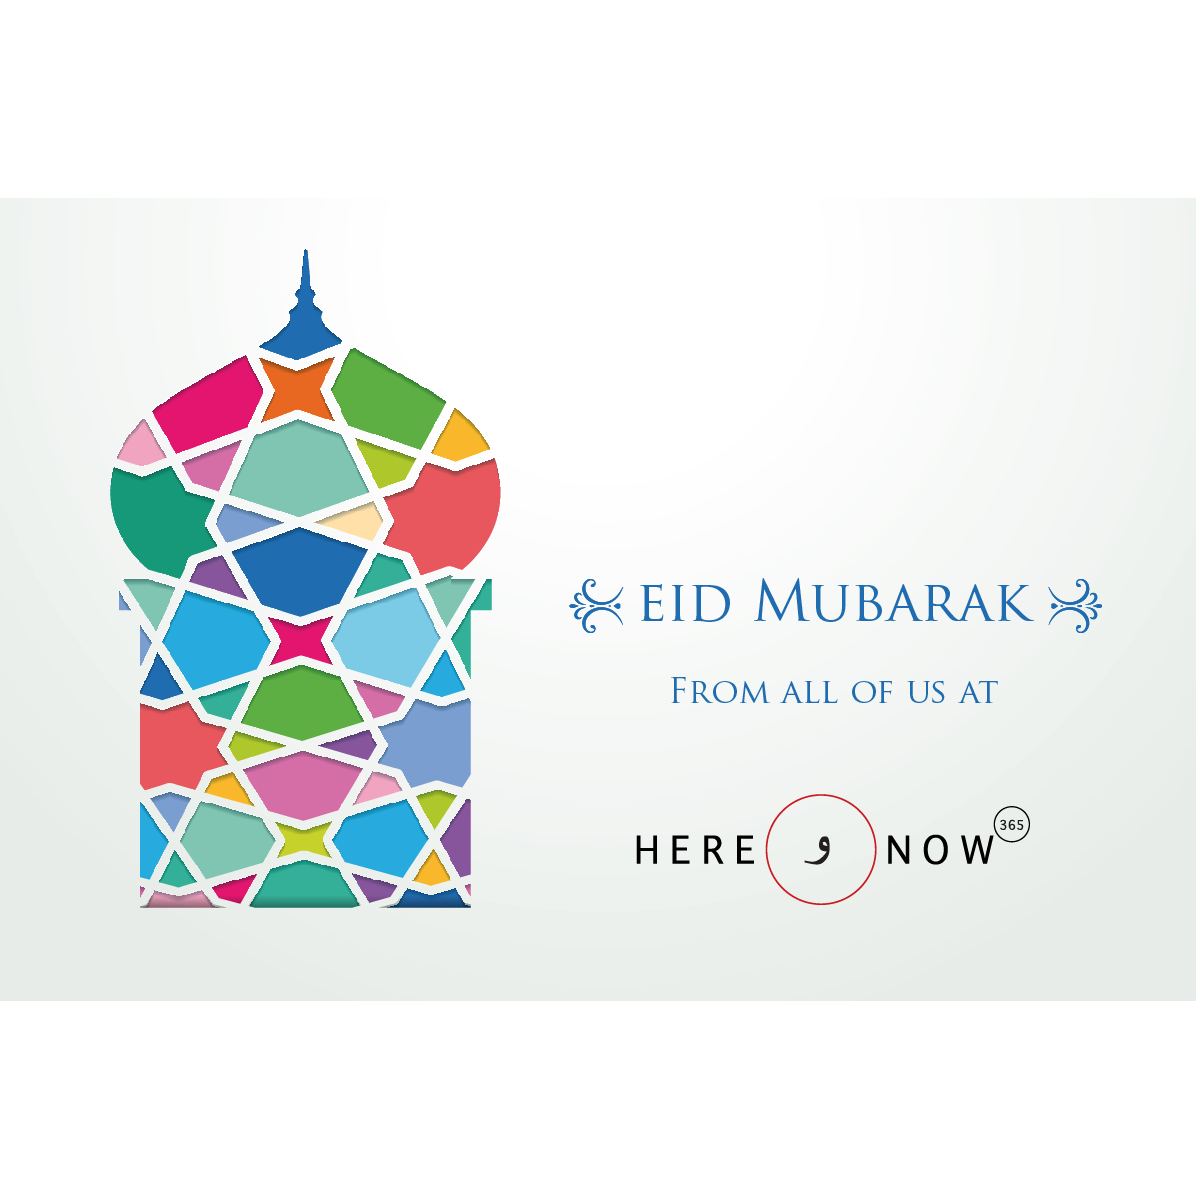 Hnn365 Wishes You Eid Mubarak Here And Now Defining